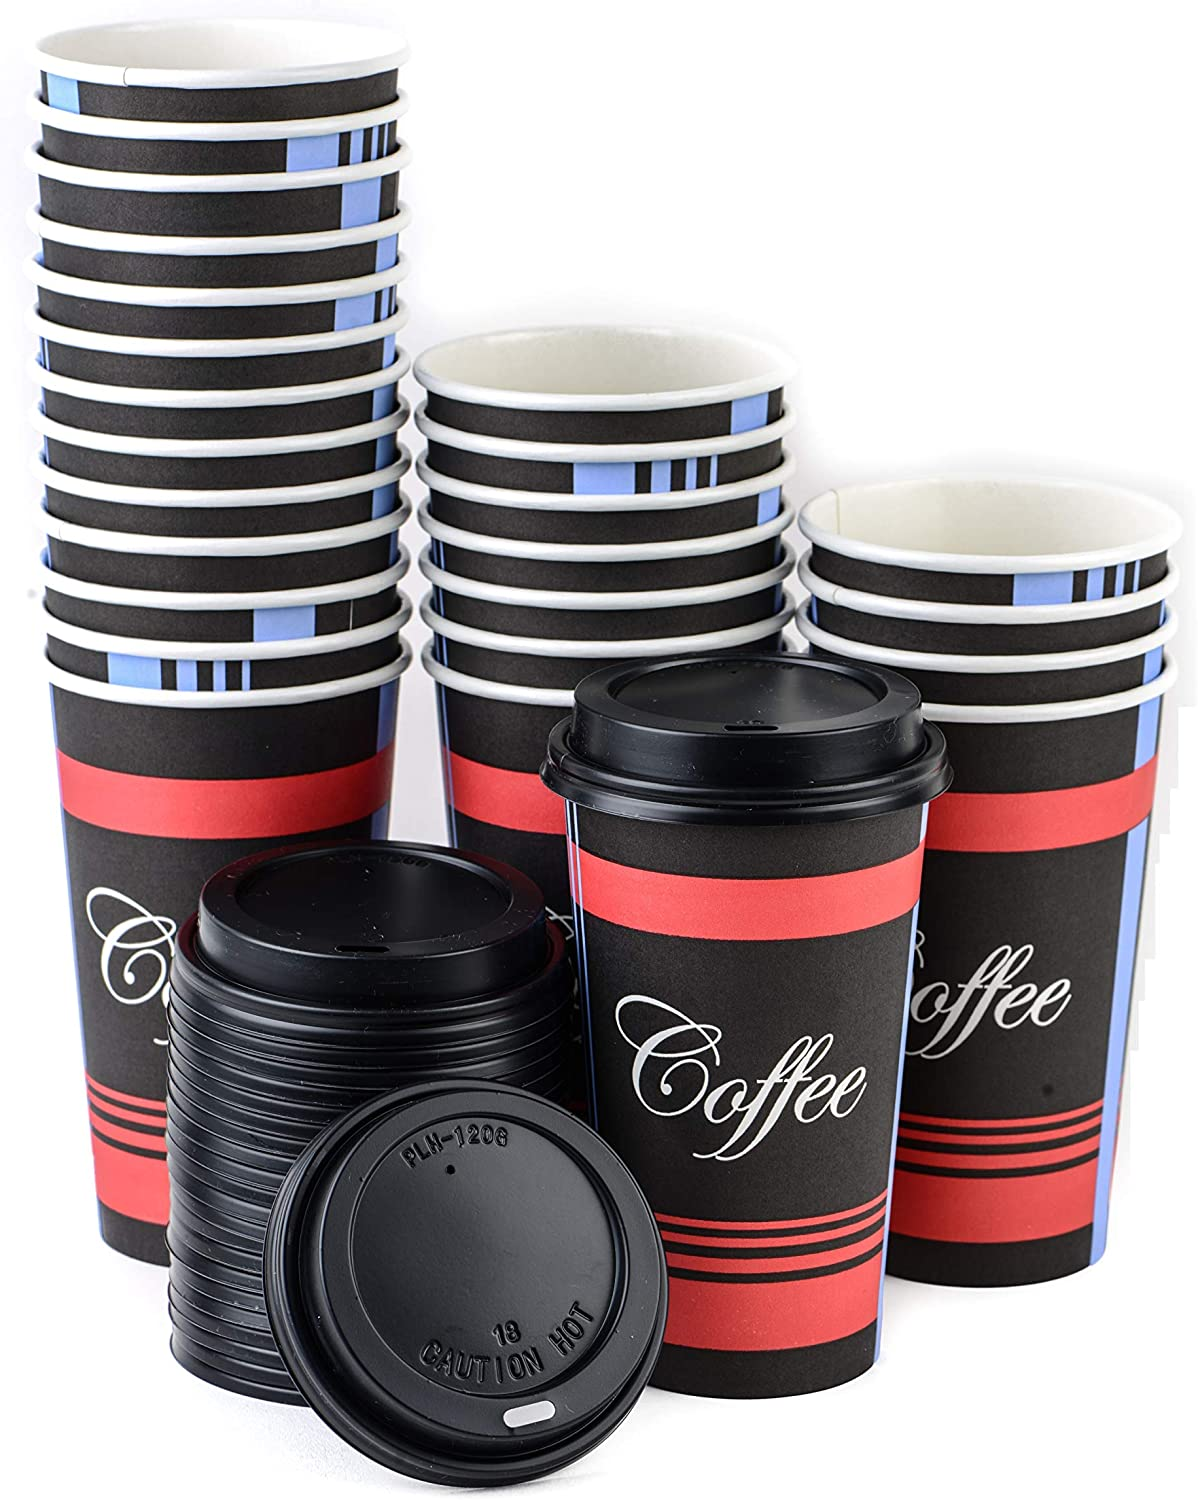 Extra Large 20 oz 150 Count by EcoQuality - Classic Durable Disposable Paper Cups & Black Dome Lids For Hot/Cold Drink, Coffee, Tea, Cocoa, Travel - 20 Ounce Cups, 150 Count Cups & 150 Black Lids